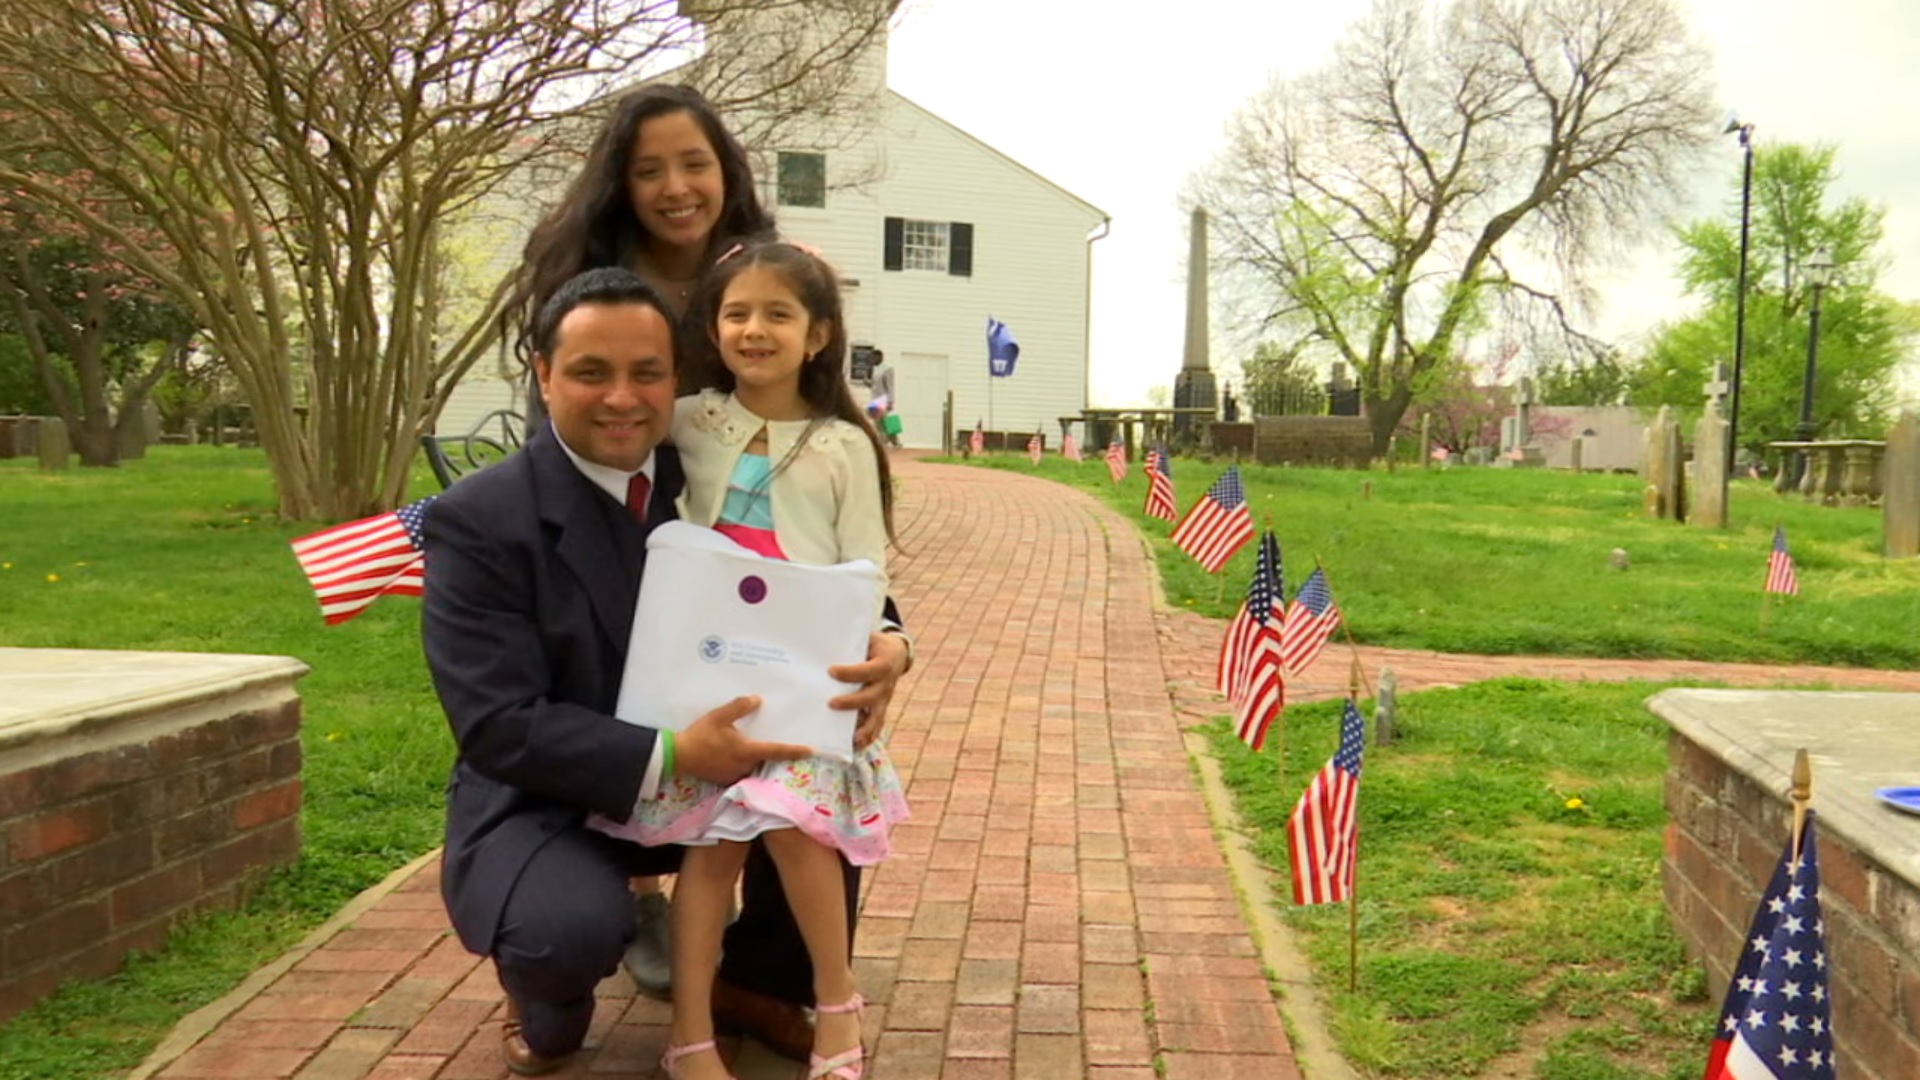 We are living the American dream:' 72 people take oath in